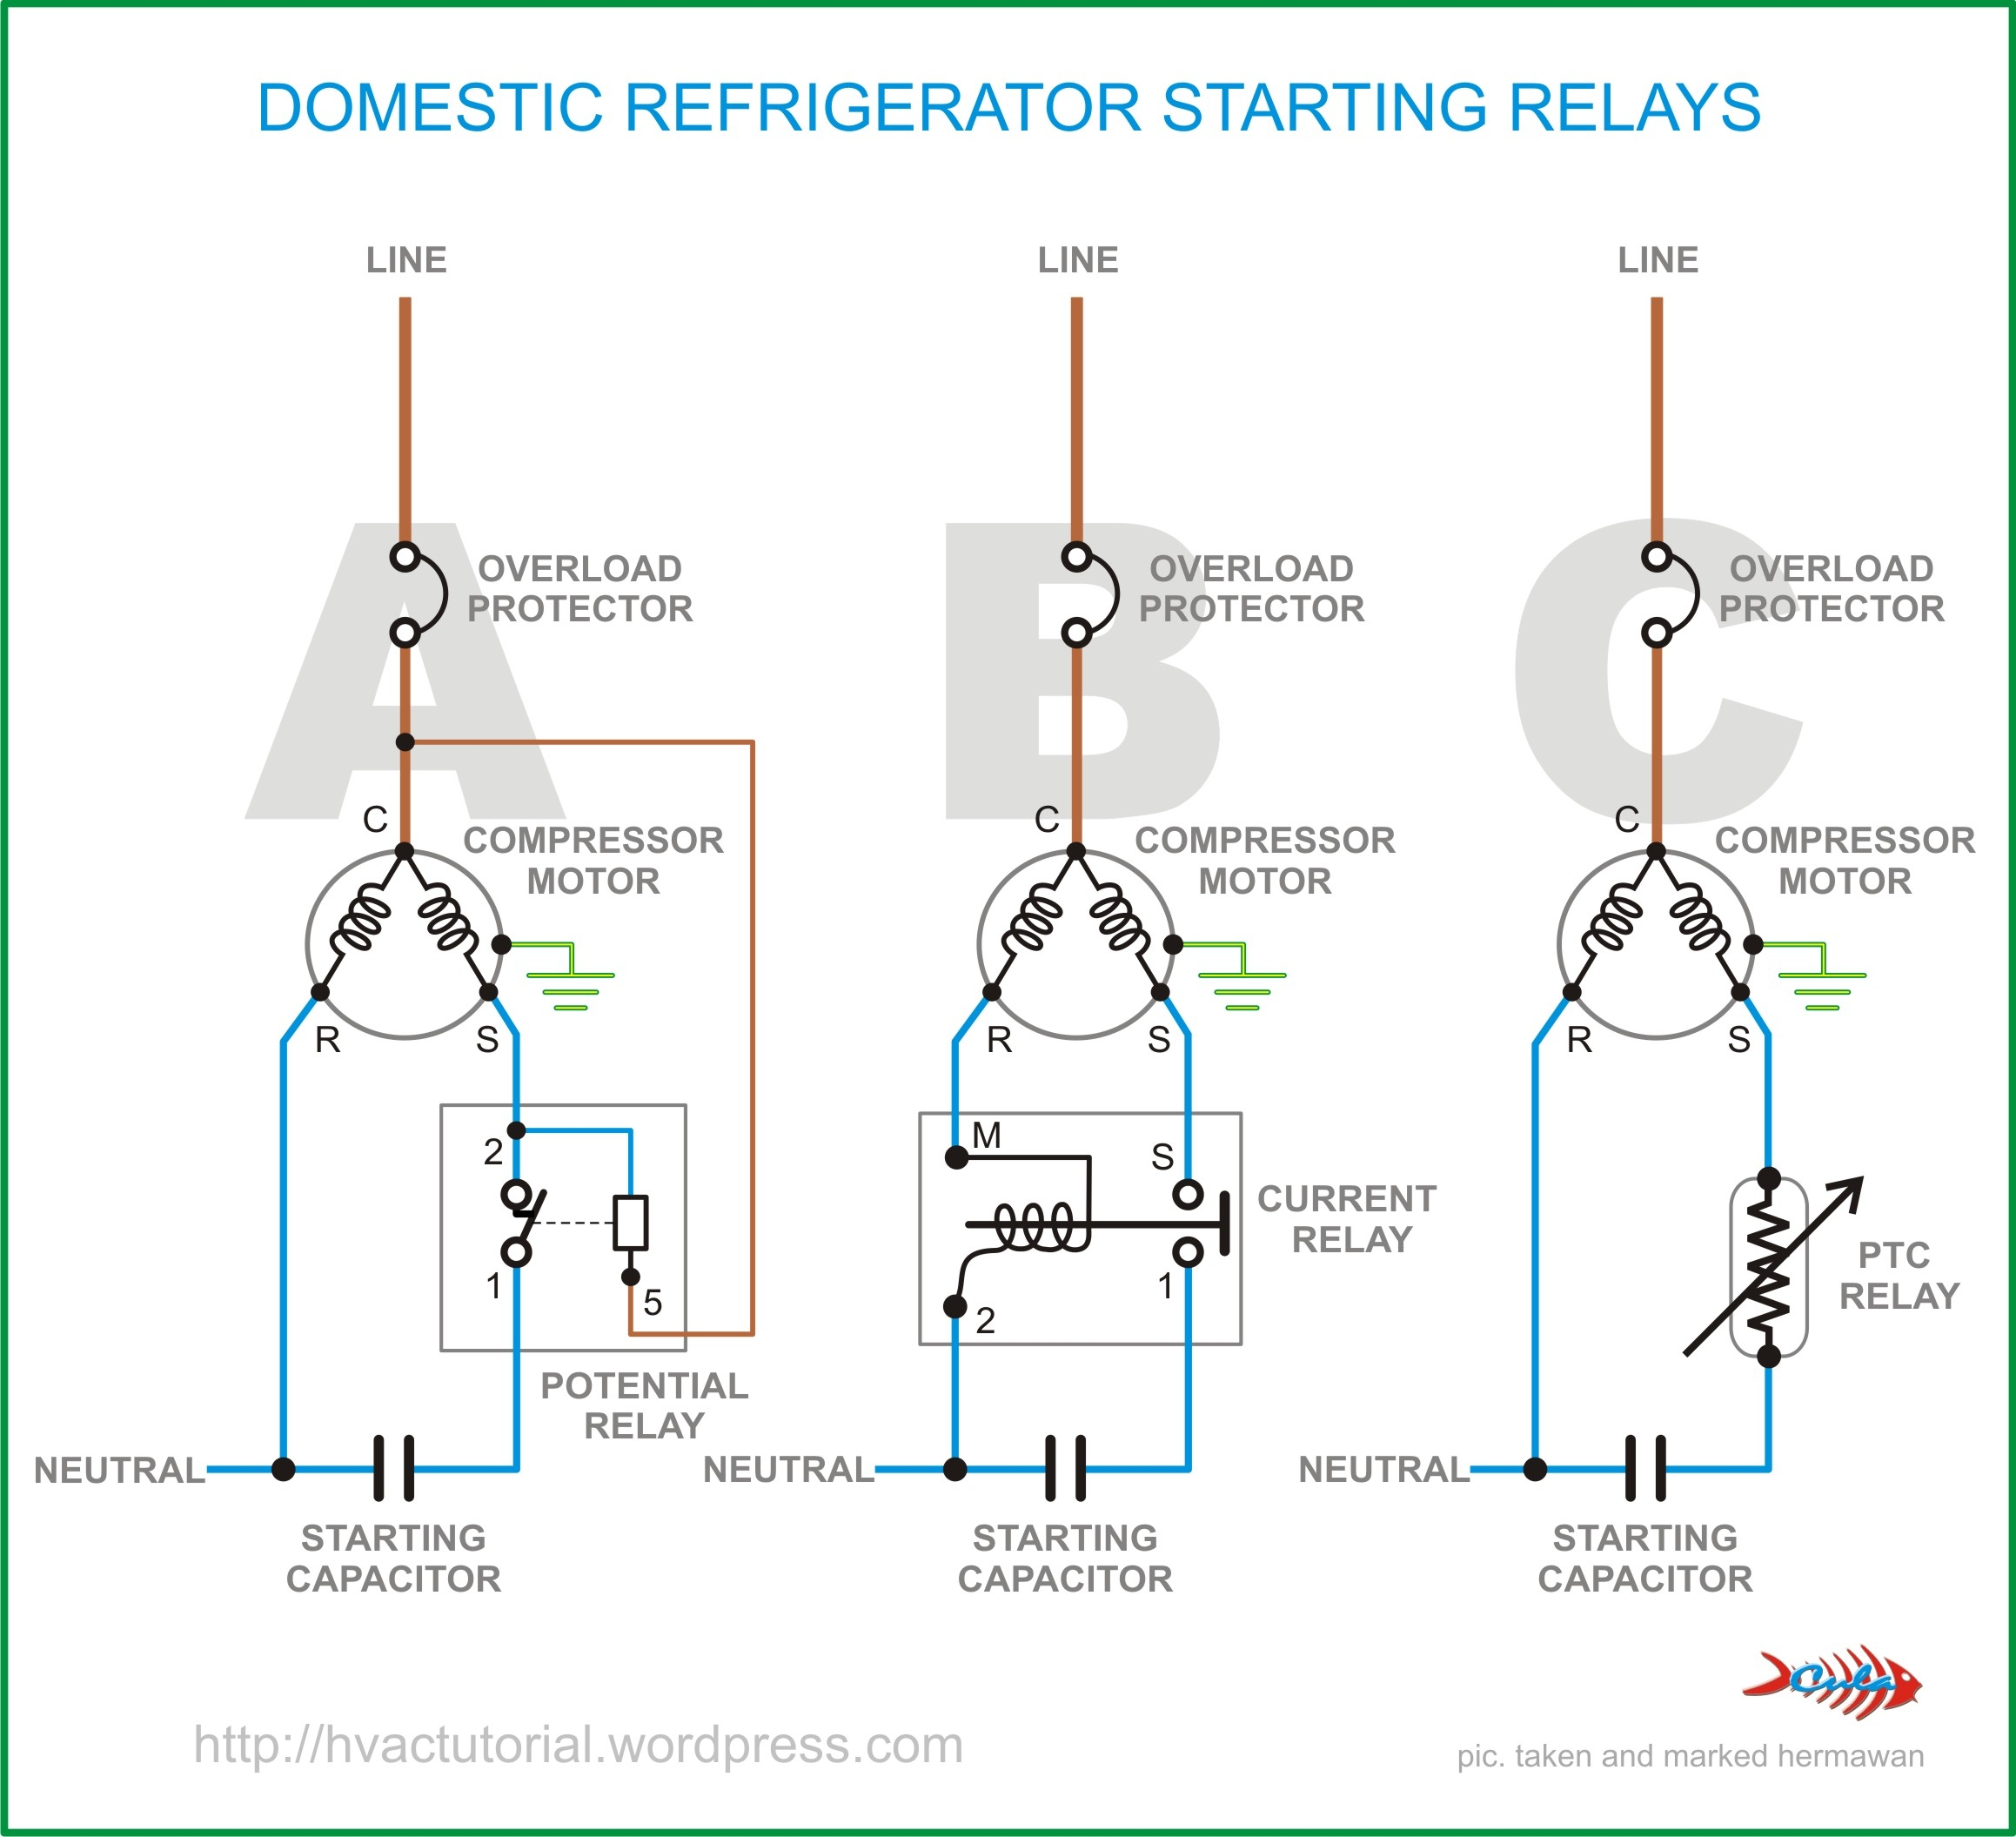 refrigerator start relay wiring diagram Collection-Wiring Diagram Pics Detail Name refrigerator start relay wiring diagram – Domestic Refrigerator Starting 2-i